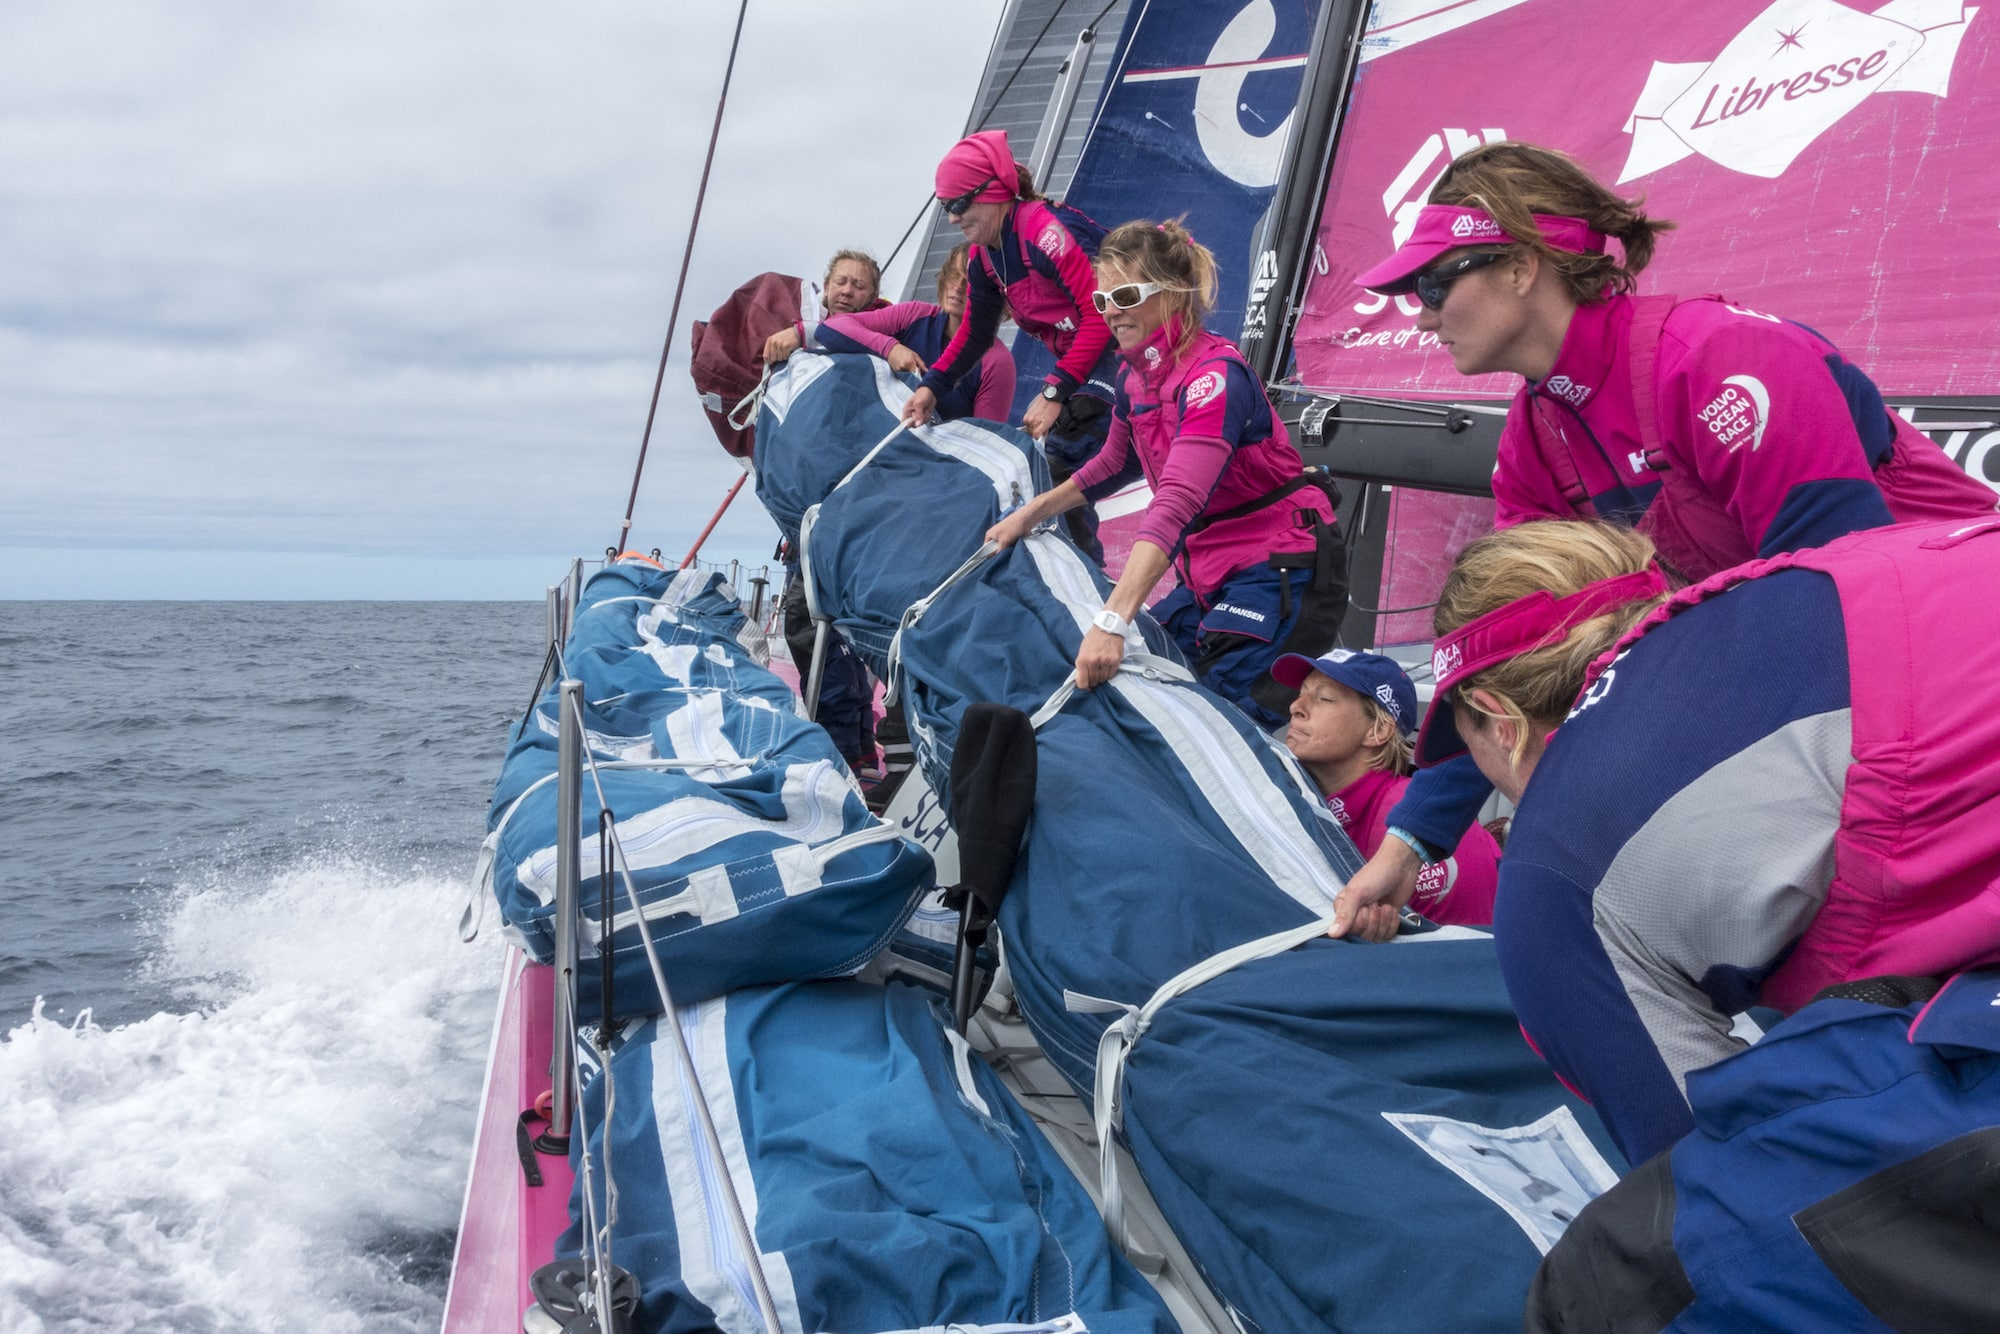 These 13 inspiring women from Team SCA are sailing across the world in the Ocean Volvo Race! Read more about their history breaking journey!